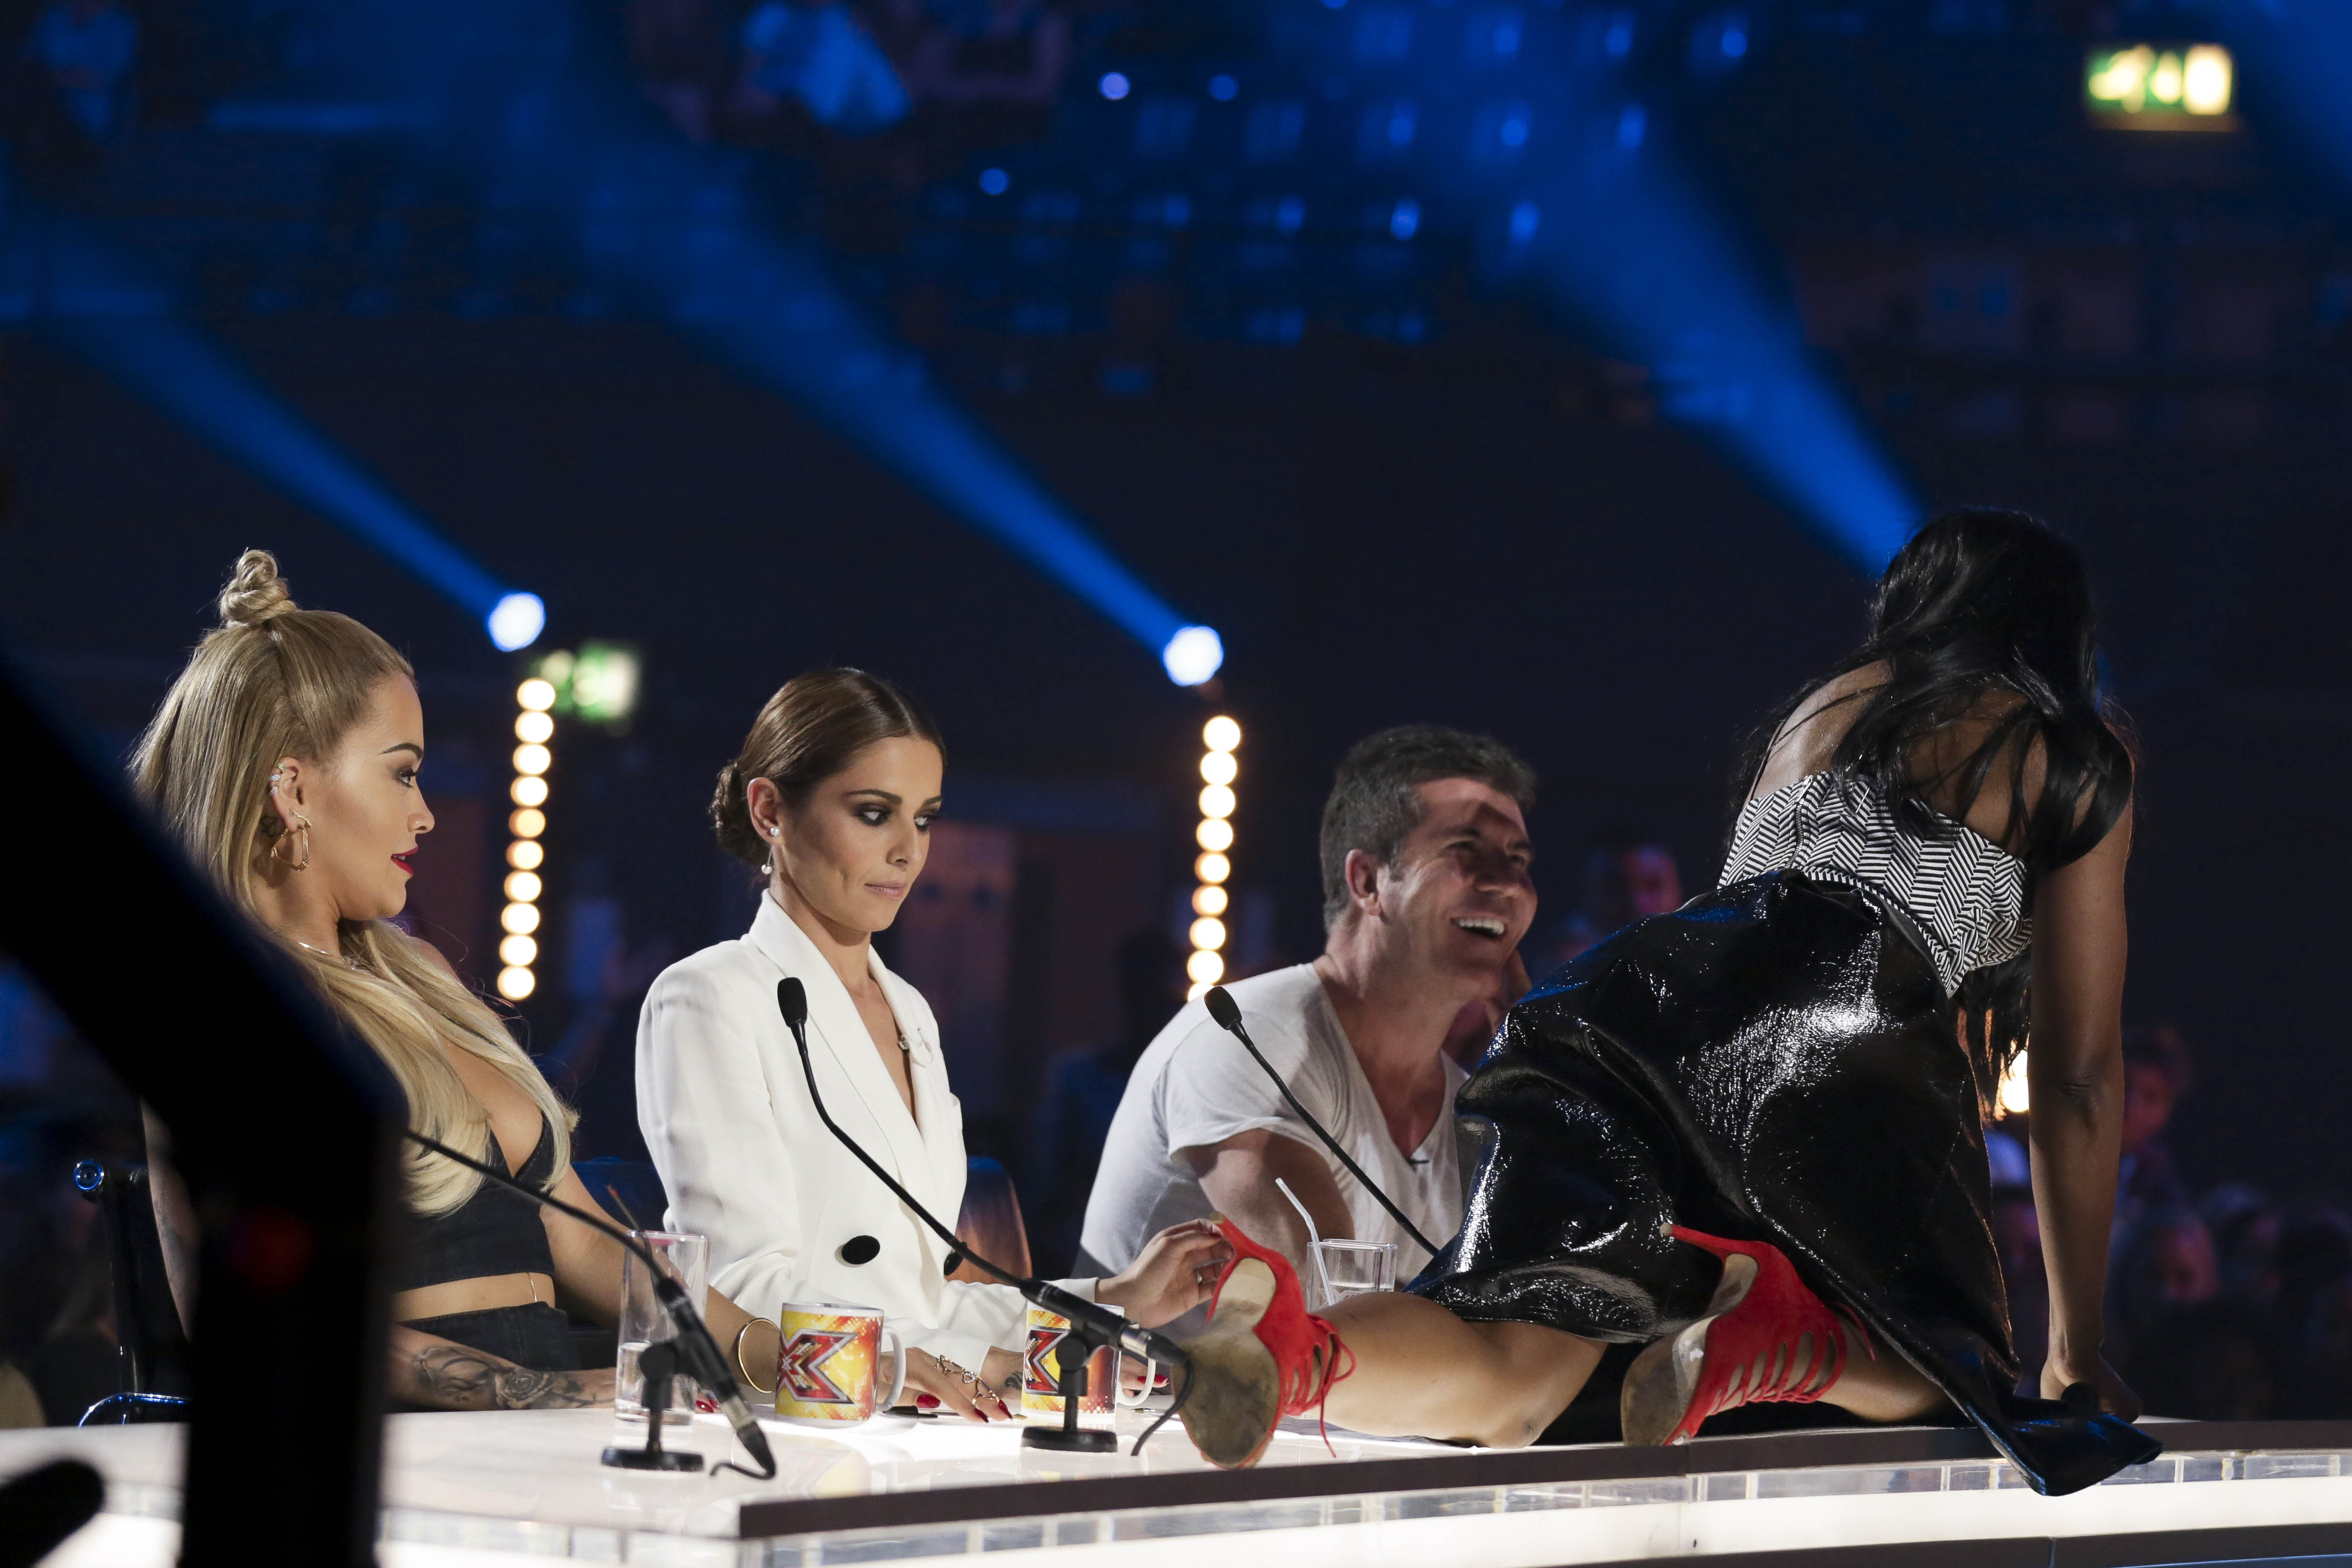 The X Factor 2015: From an Olly Murs tribute act to a 'nasty' Tina Turner routine – who impressed the judges this week?